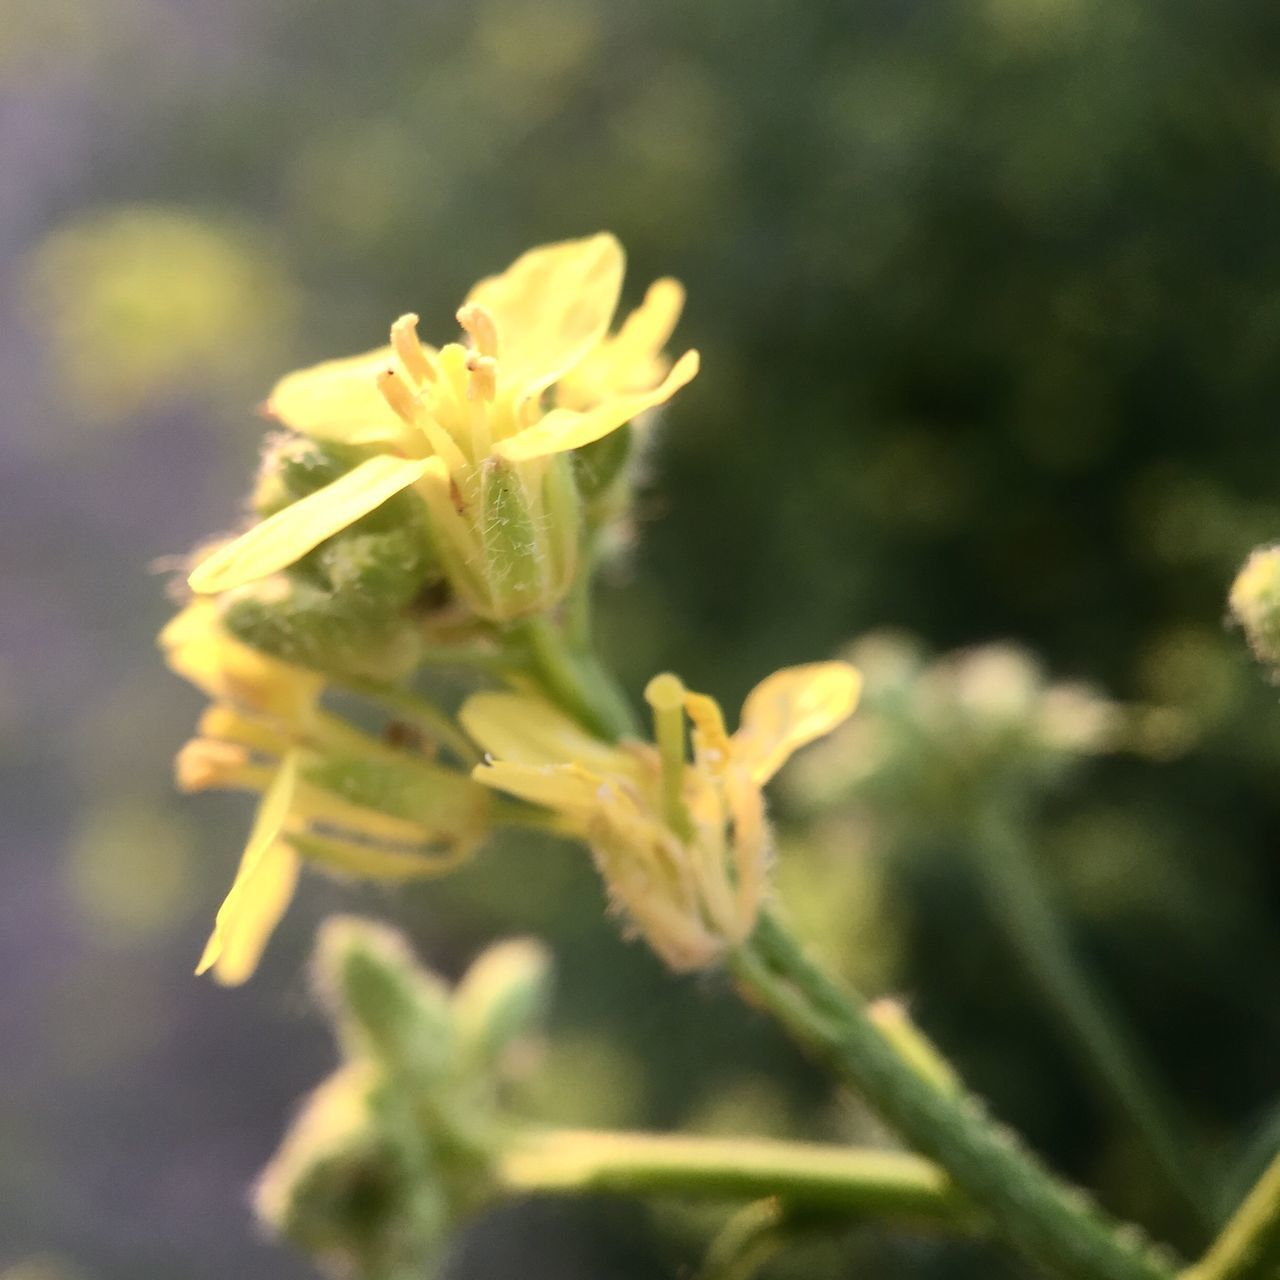 growth, nature, plant, flower, no people, selective focus, fragility, beauty in nature, yellow, close-up, day, outdoors, green color, freshness, flower head